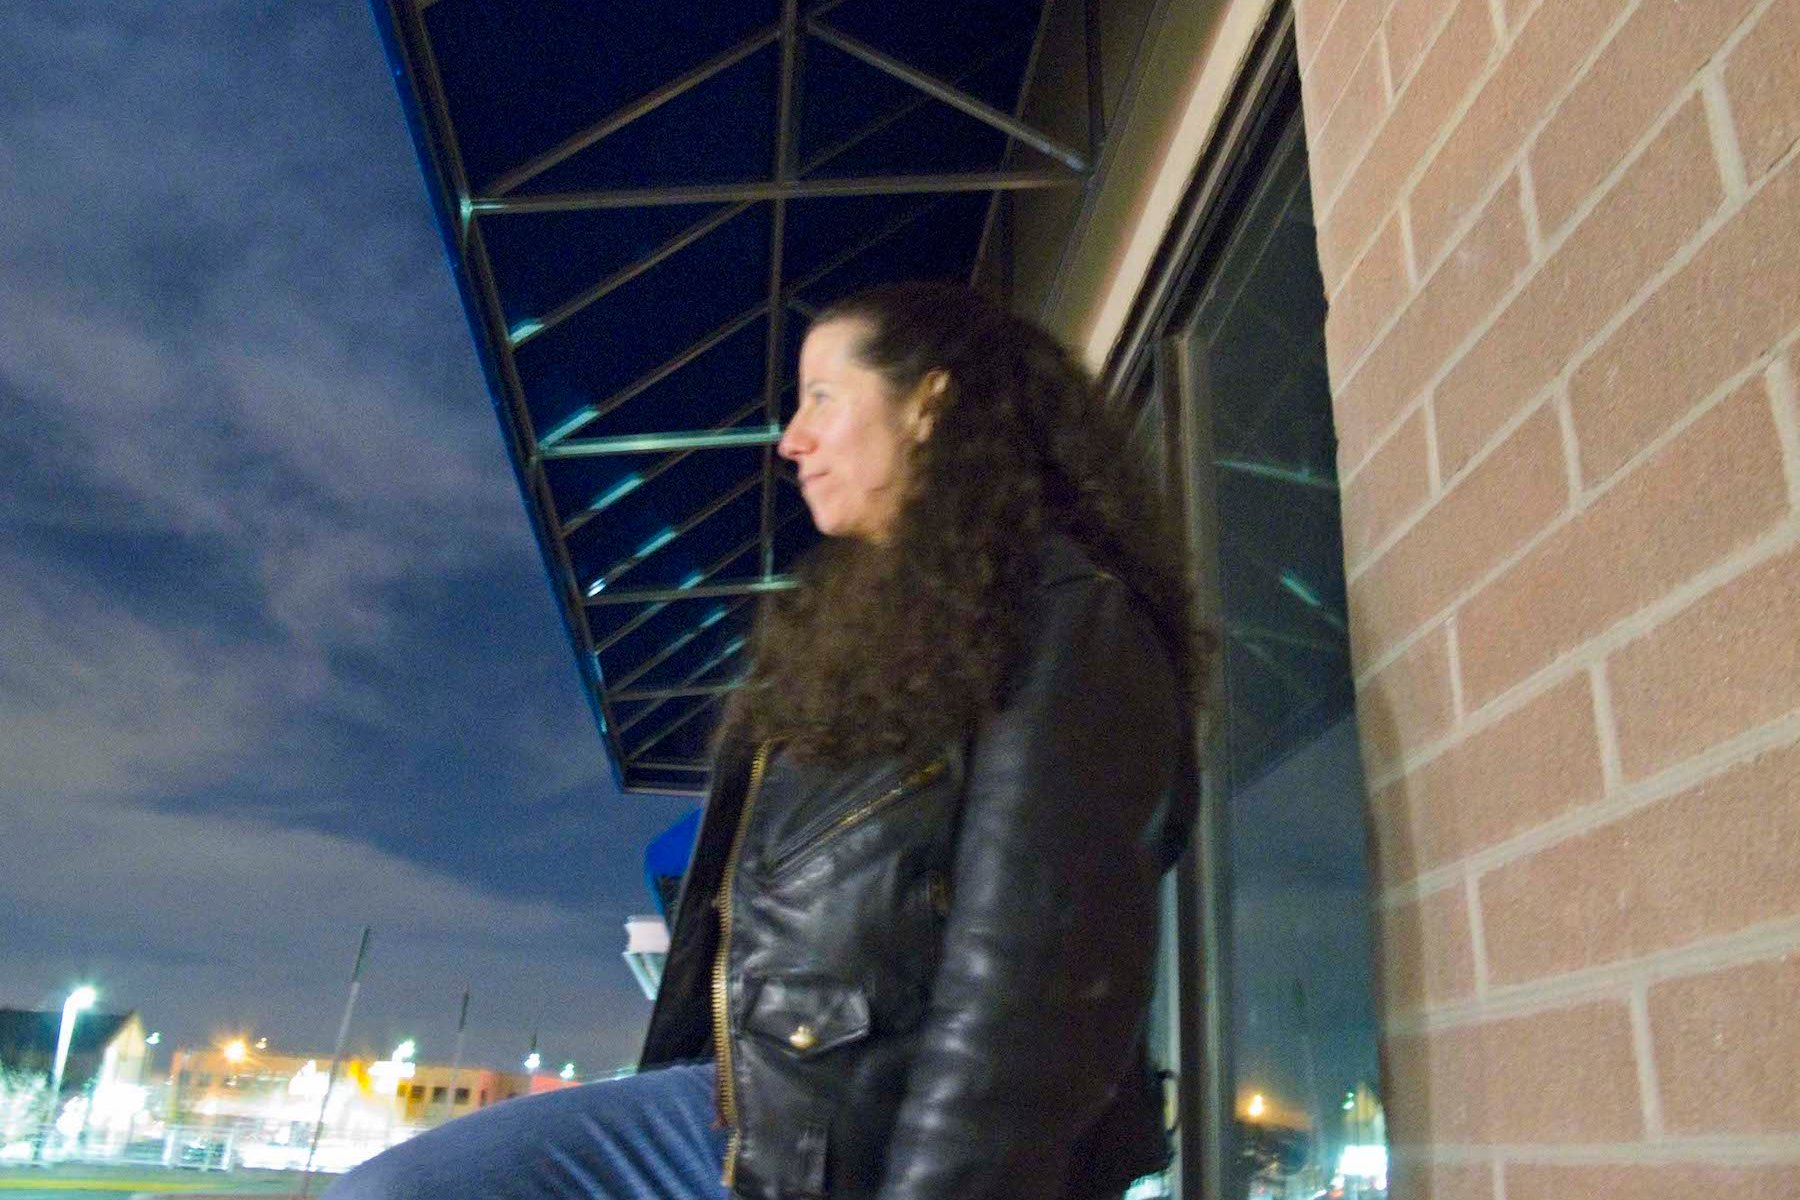 A woman with long curly dark hair, poses in a black leather jacket, gazing to the horizon.